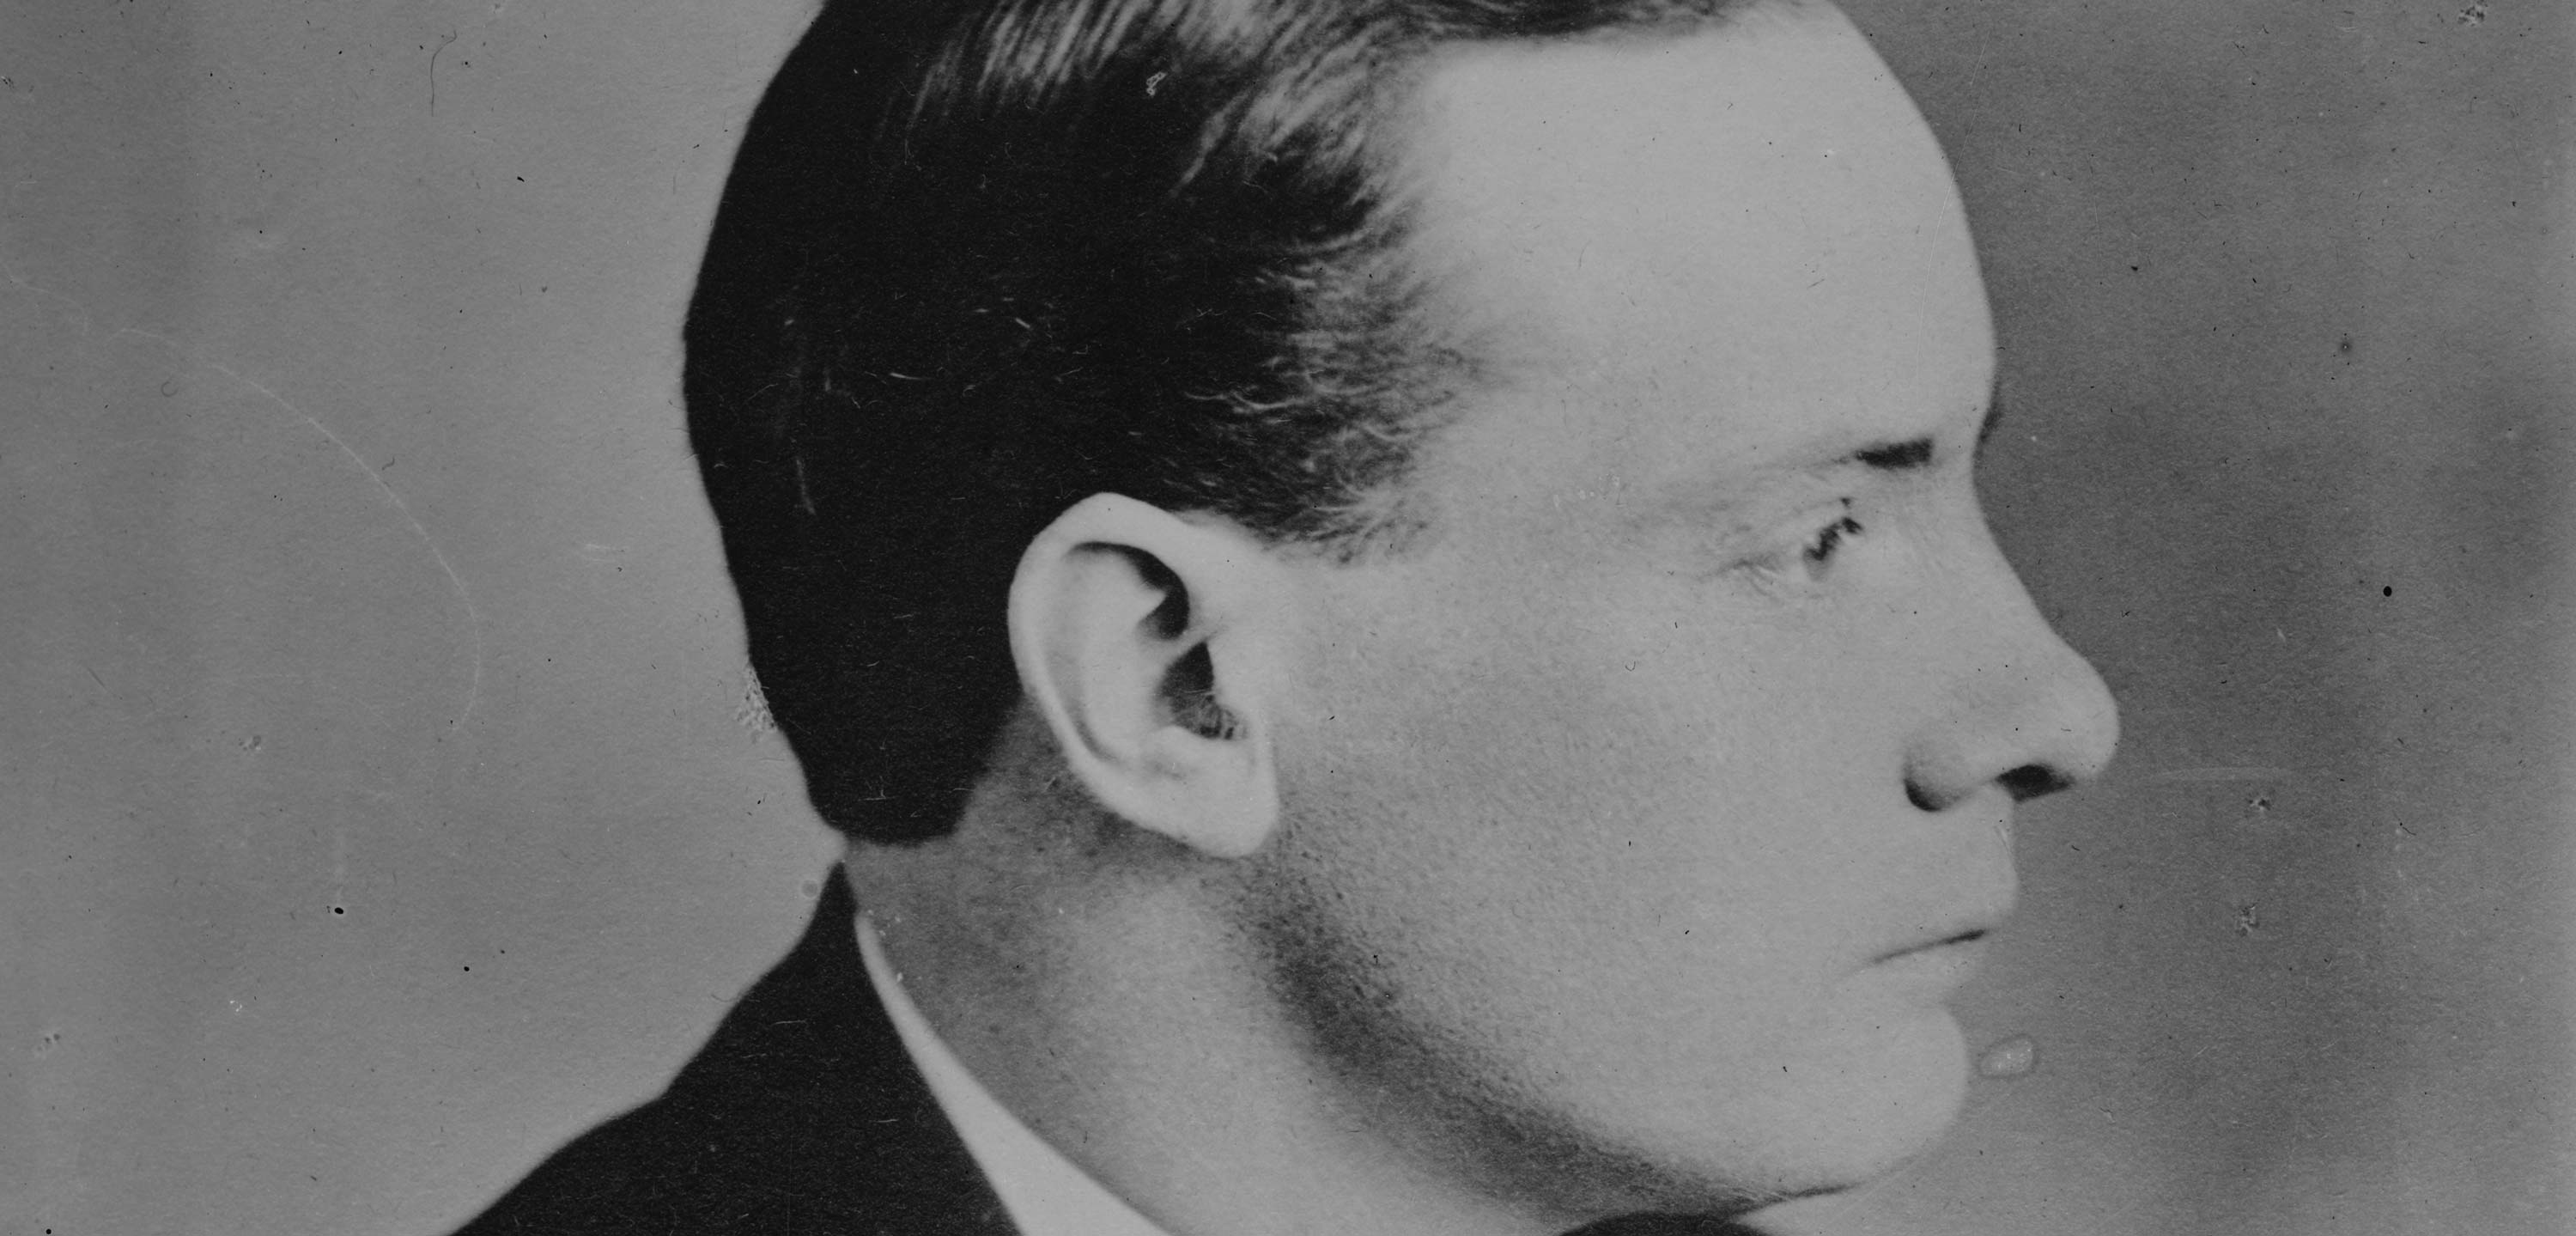 Patrick Pearse: one of Ireland's noblest martyrs